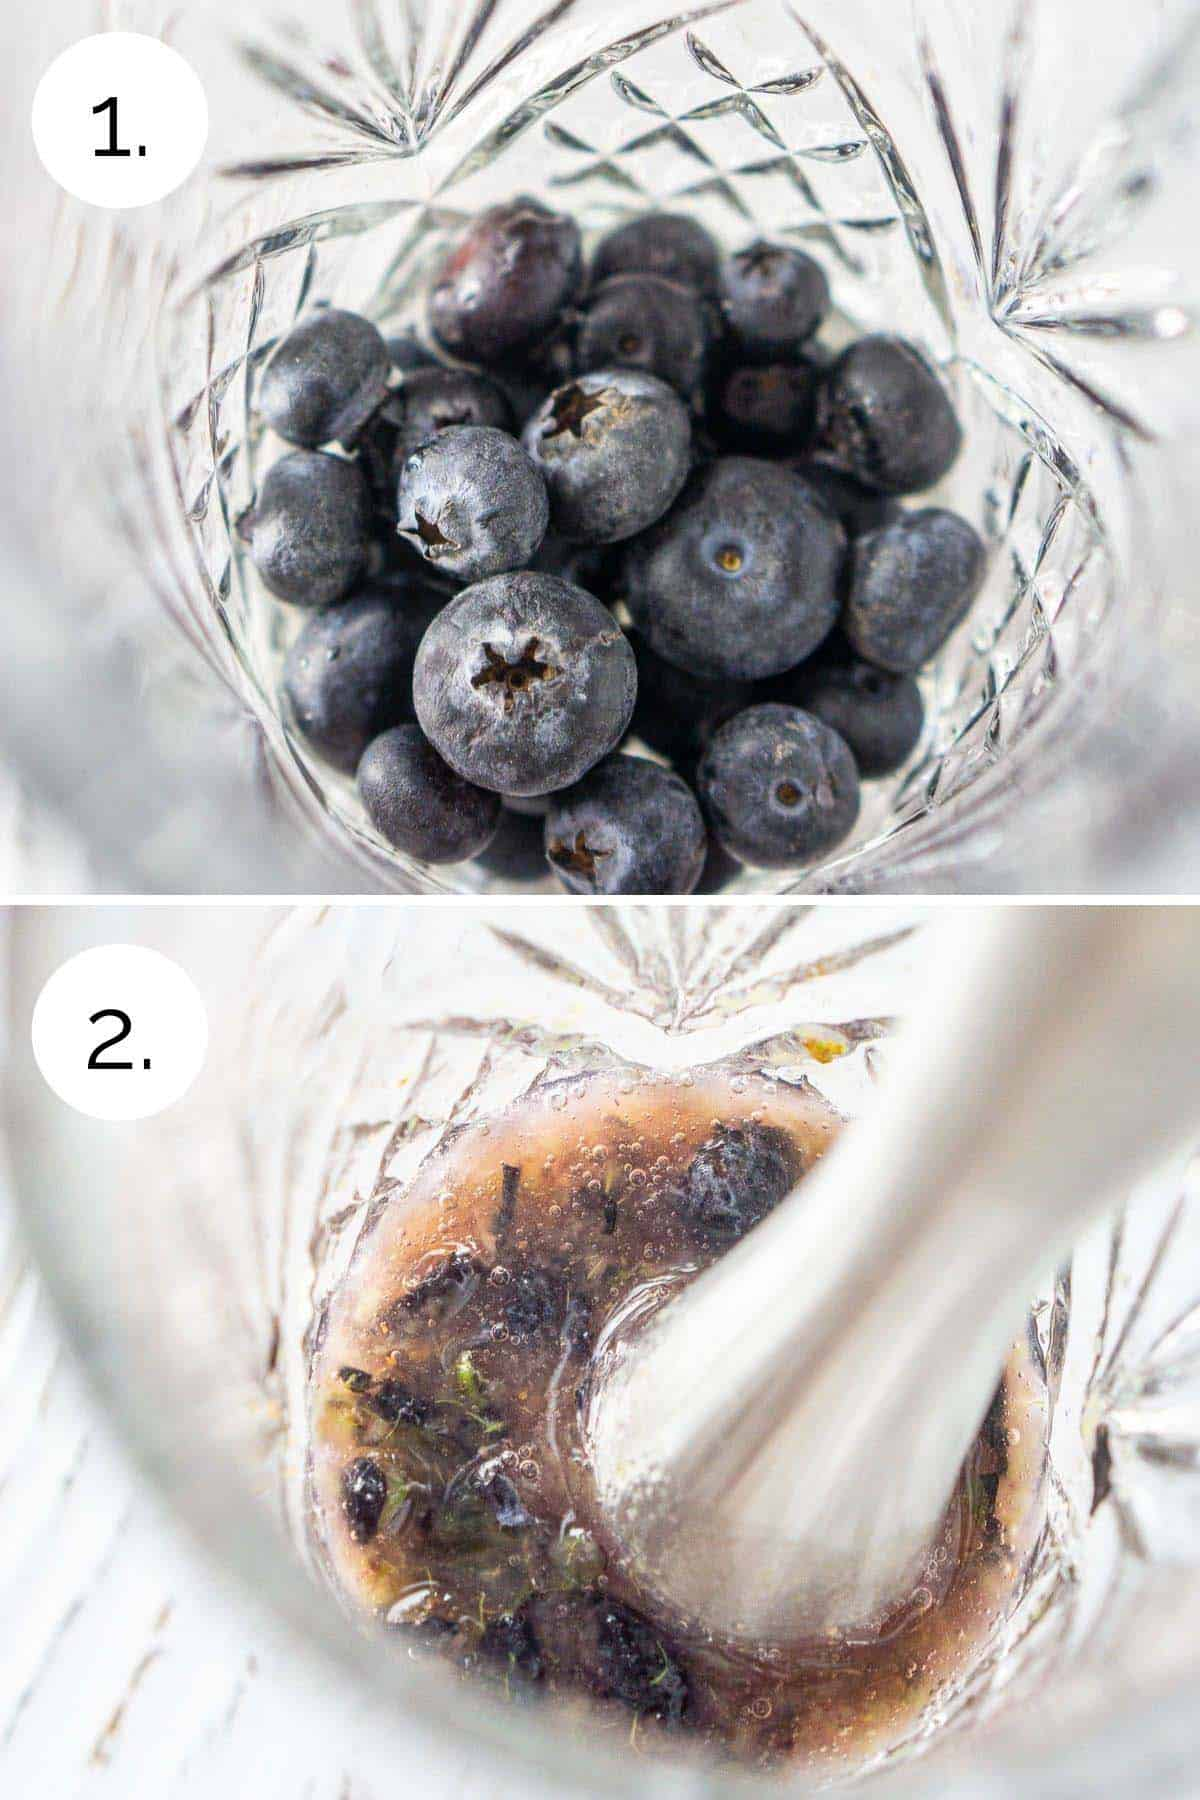 Muddling the blueberries in a cocktail shaker until well pulverized.